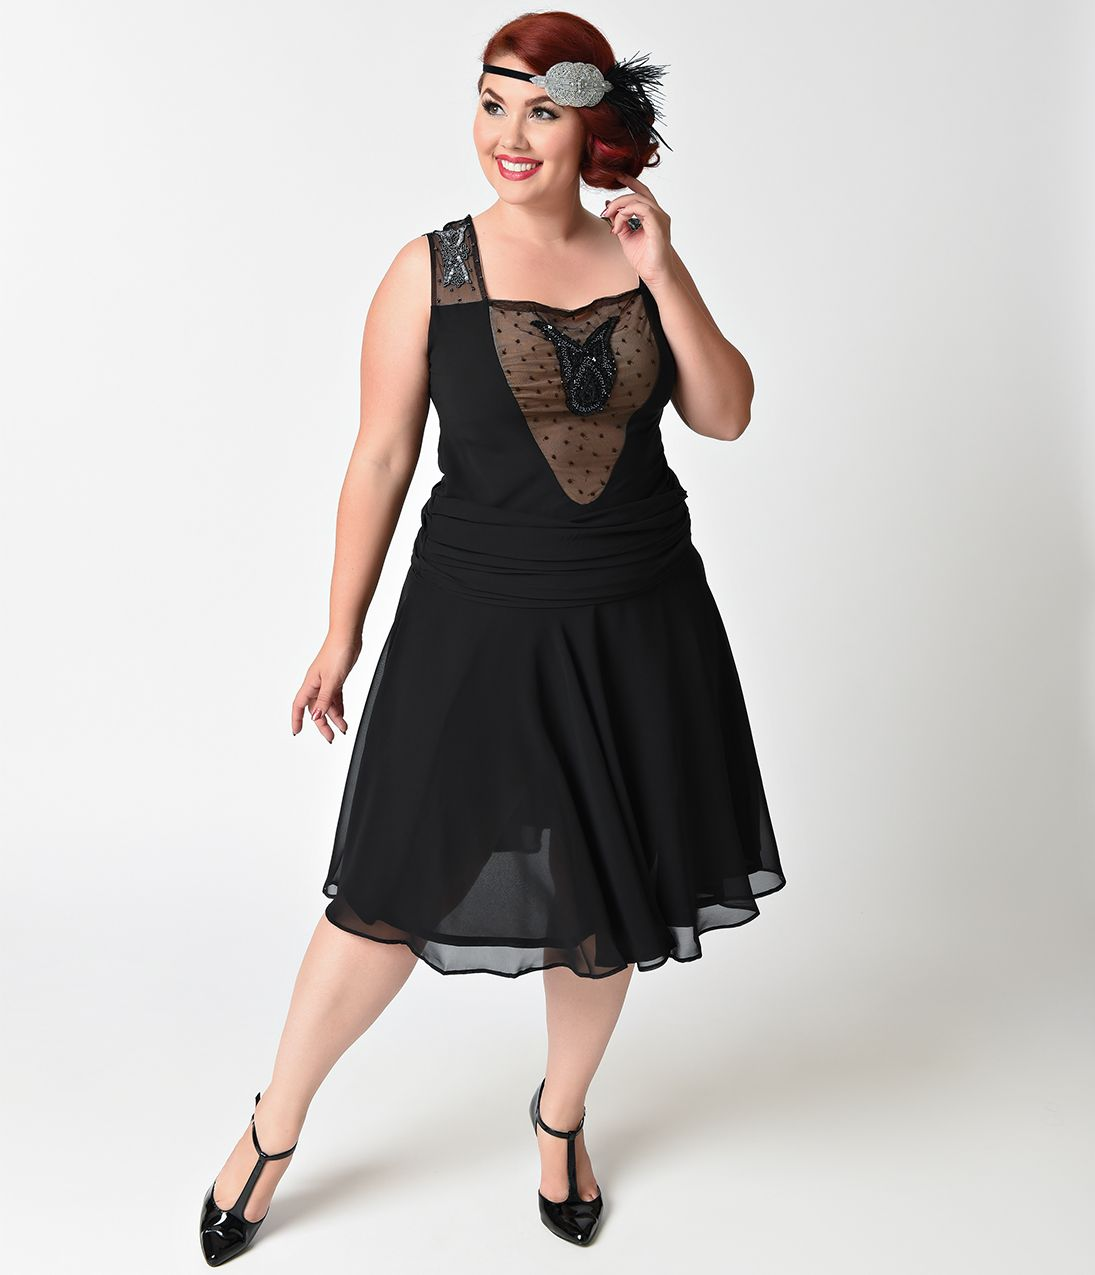 Shop 1920s Plus Size Dresses and Costumes | Things I Like in ...